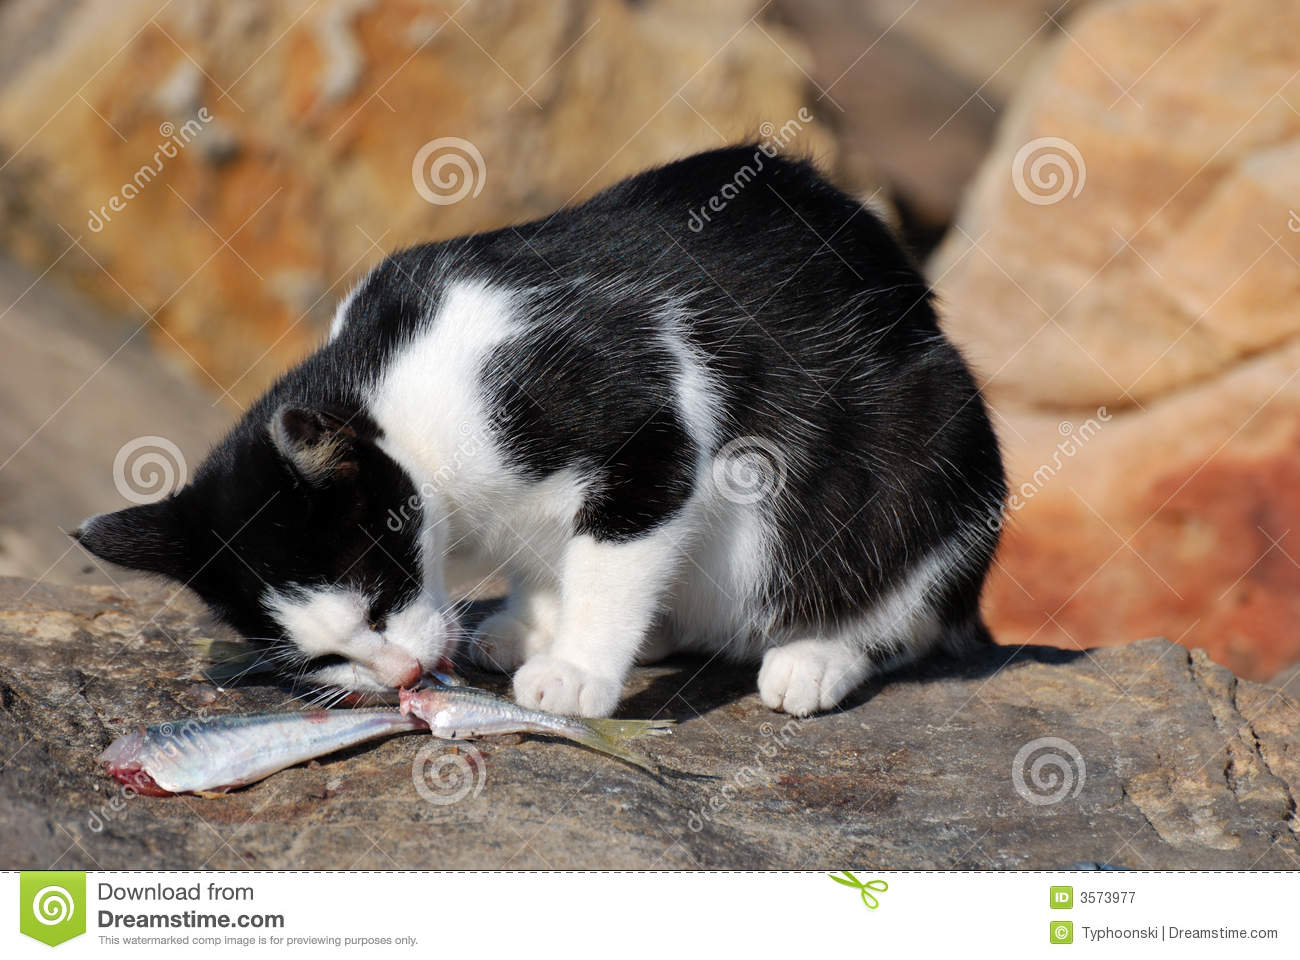 Cat eating fish stock image image of kitty kitten for Dreaming of eating fish